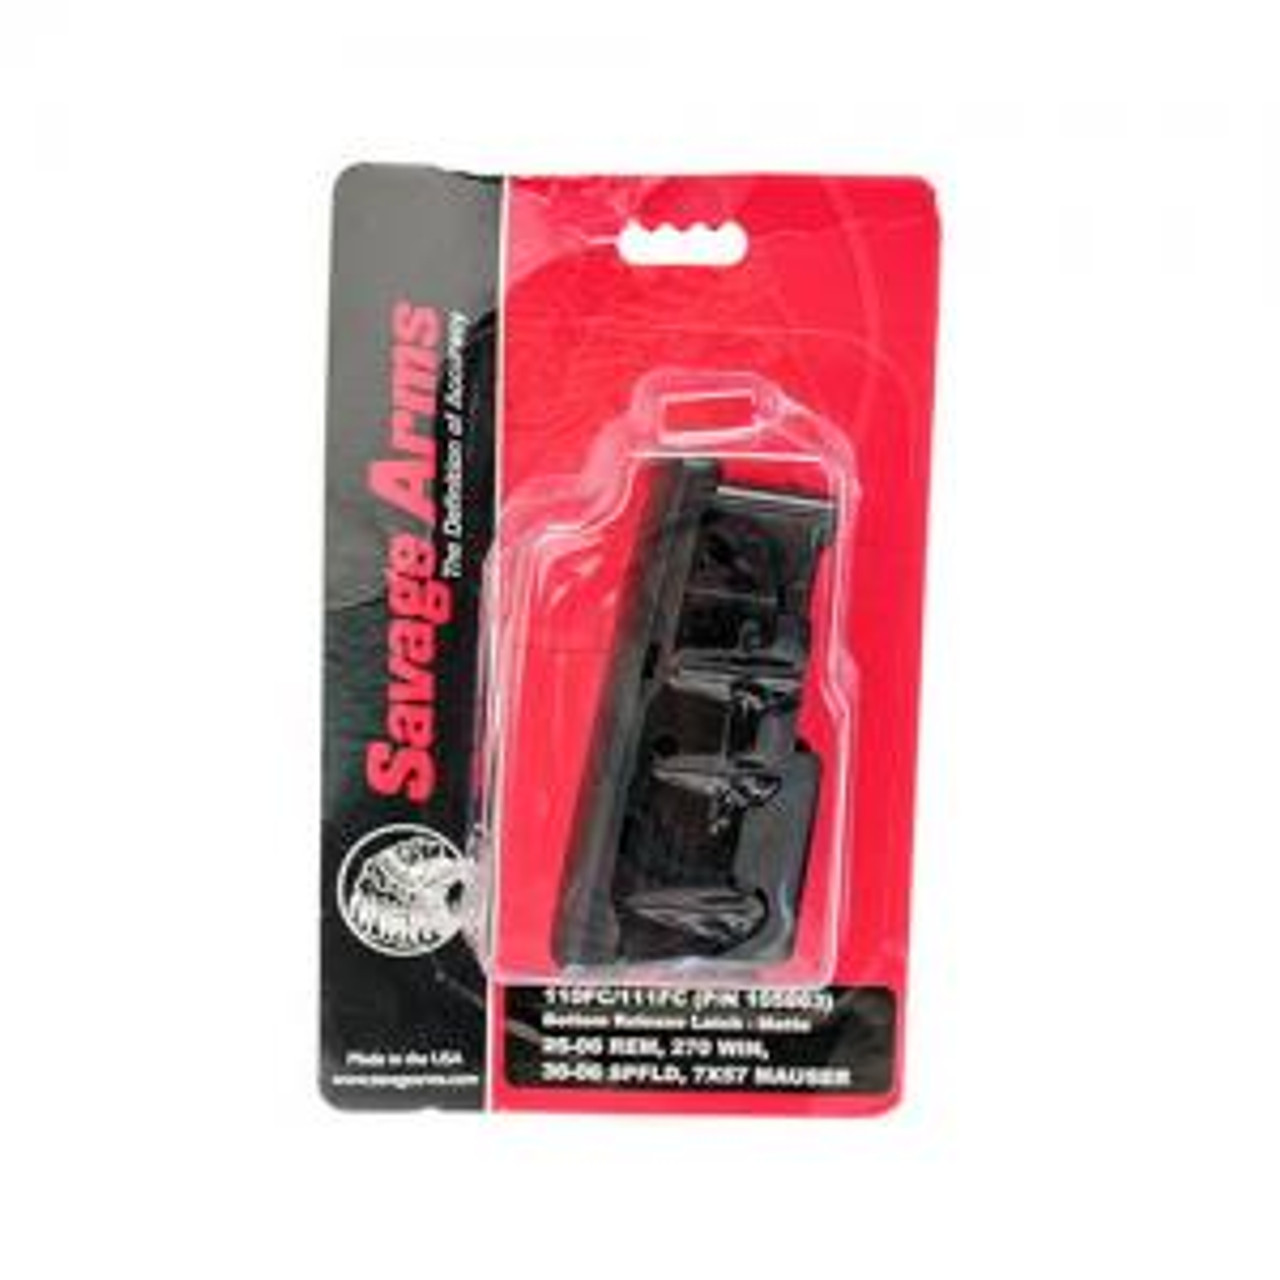 OPEN BOX SPECIAL - Savage 55117 Bottom release magazine 110/111FC 270/3006 4 rounds